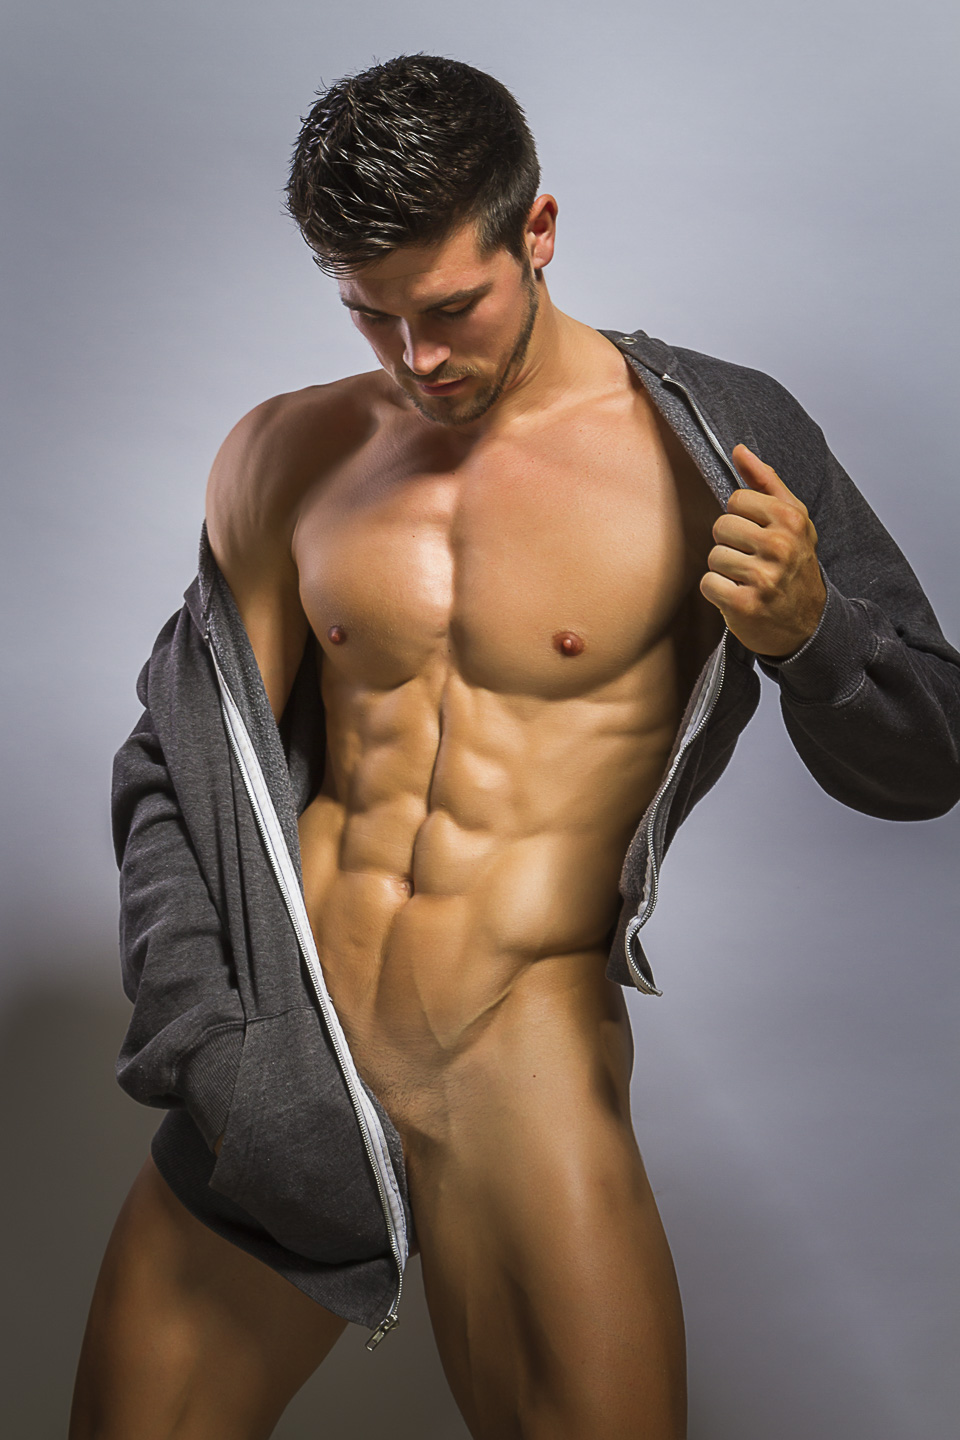 Abs, awesome, black and black hair